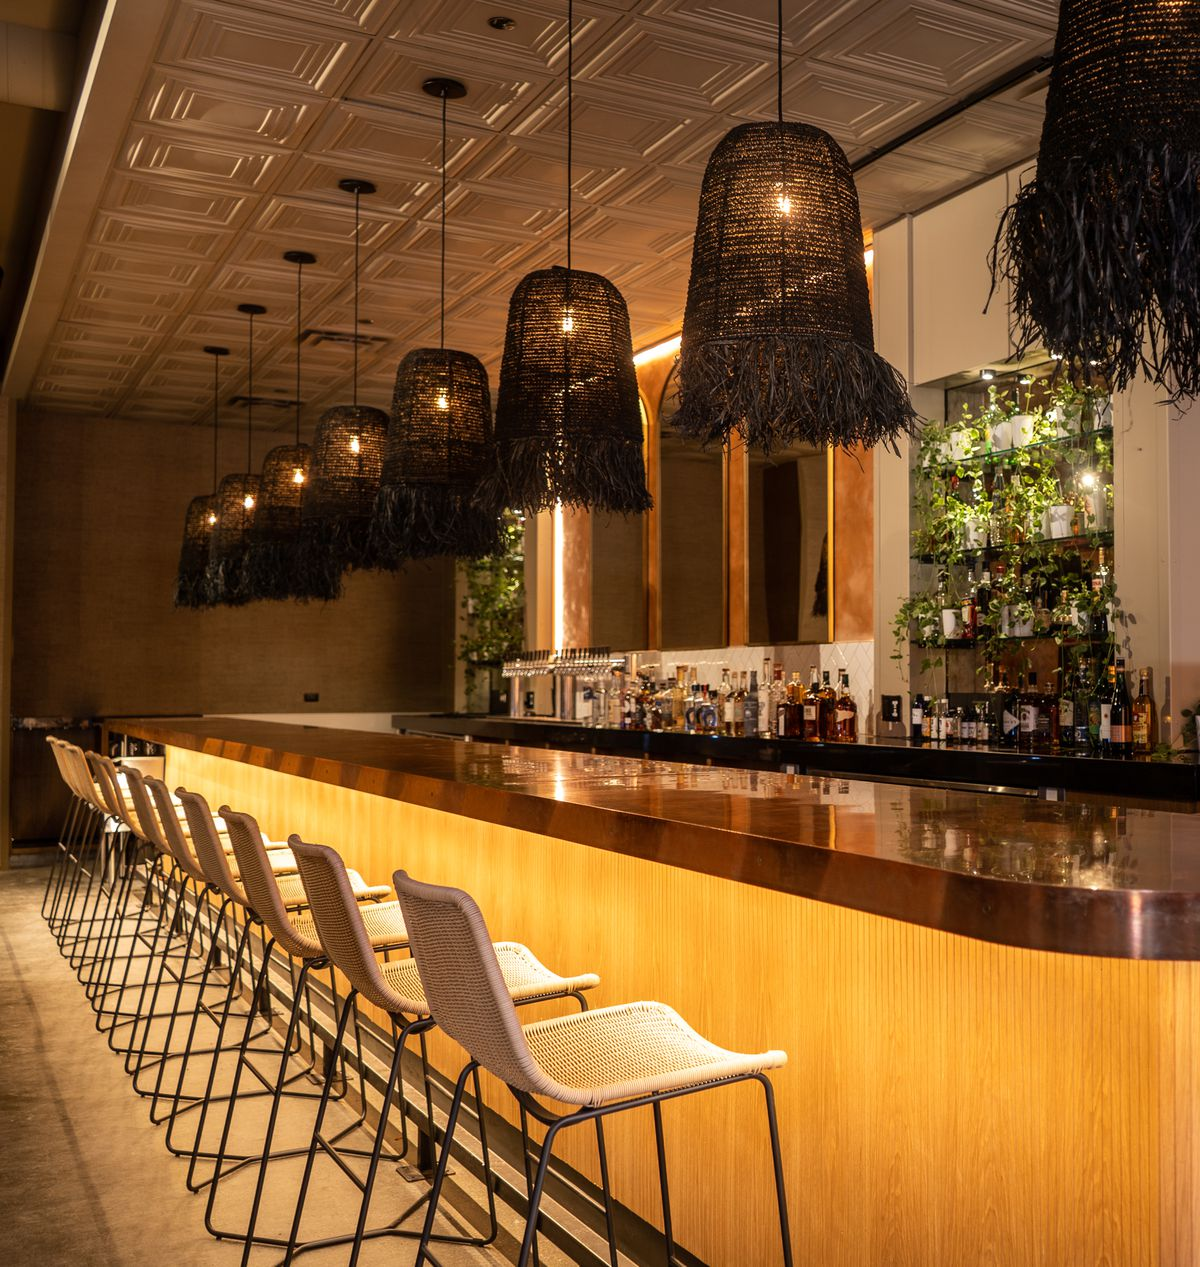 A low-lit natural wood bar with dangling basket lamps overhead